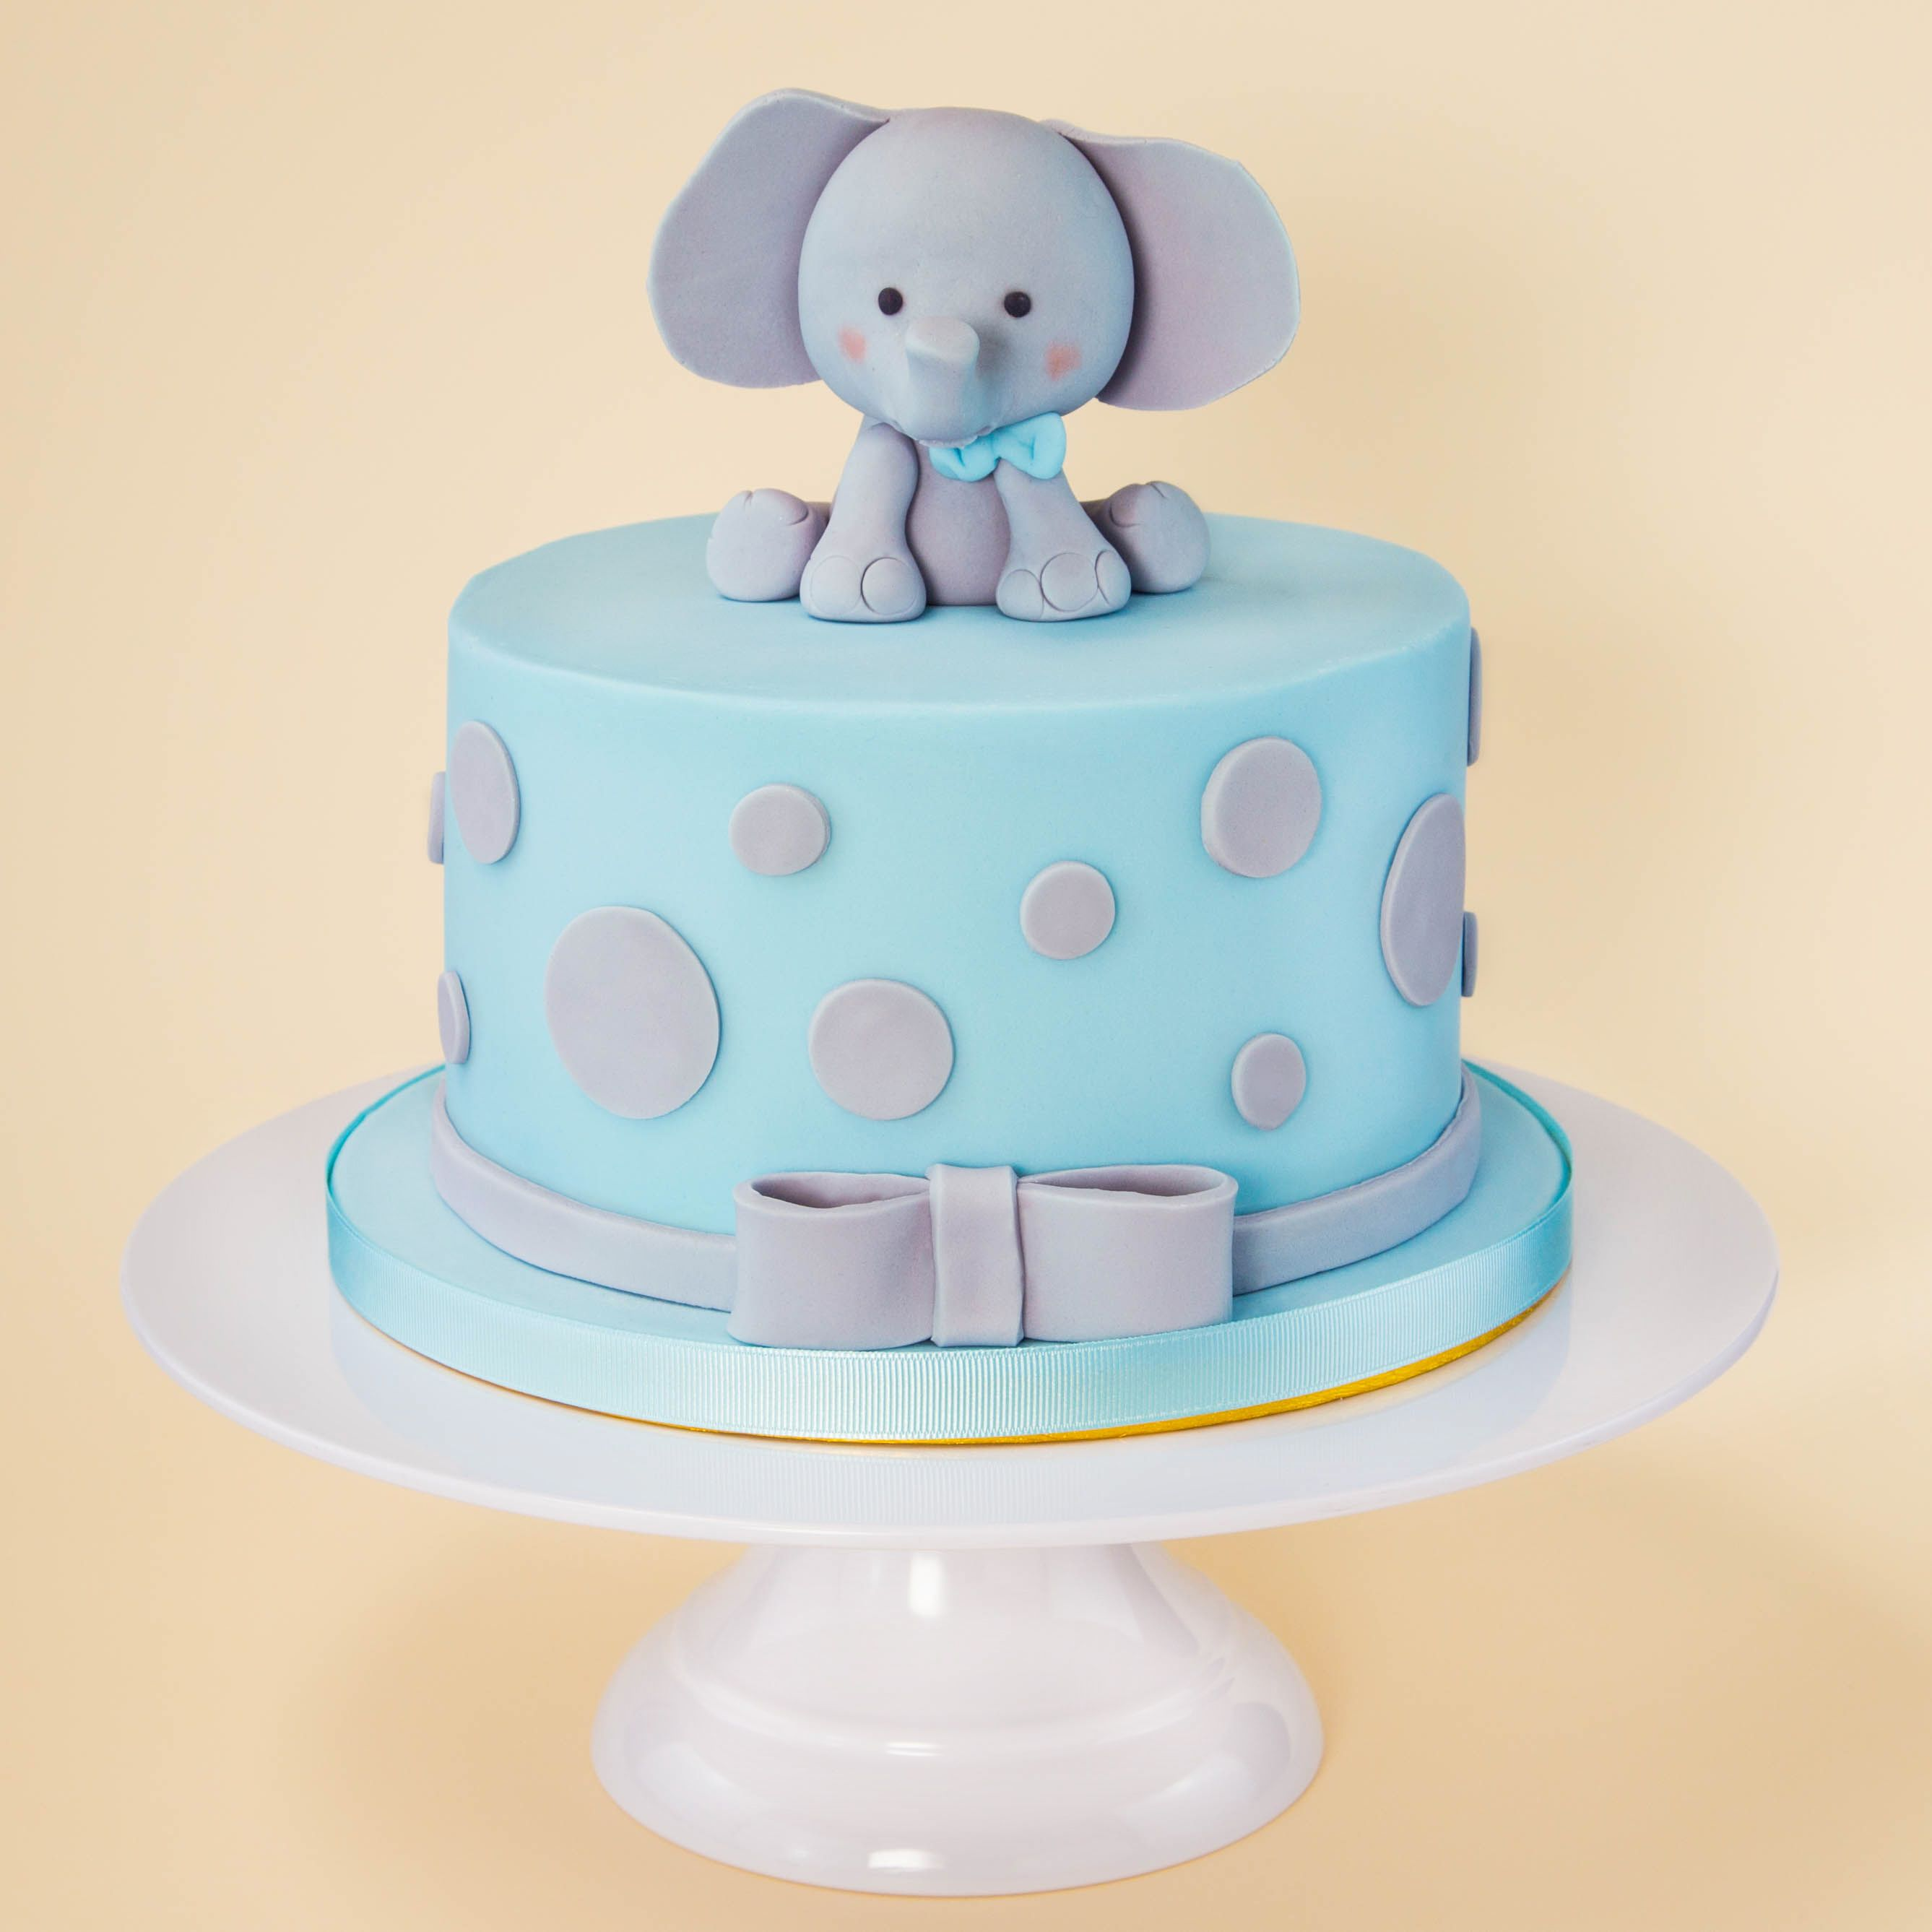 Baby Blue Elephant Cake Birthday cakes Birthdays and Cake